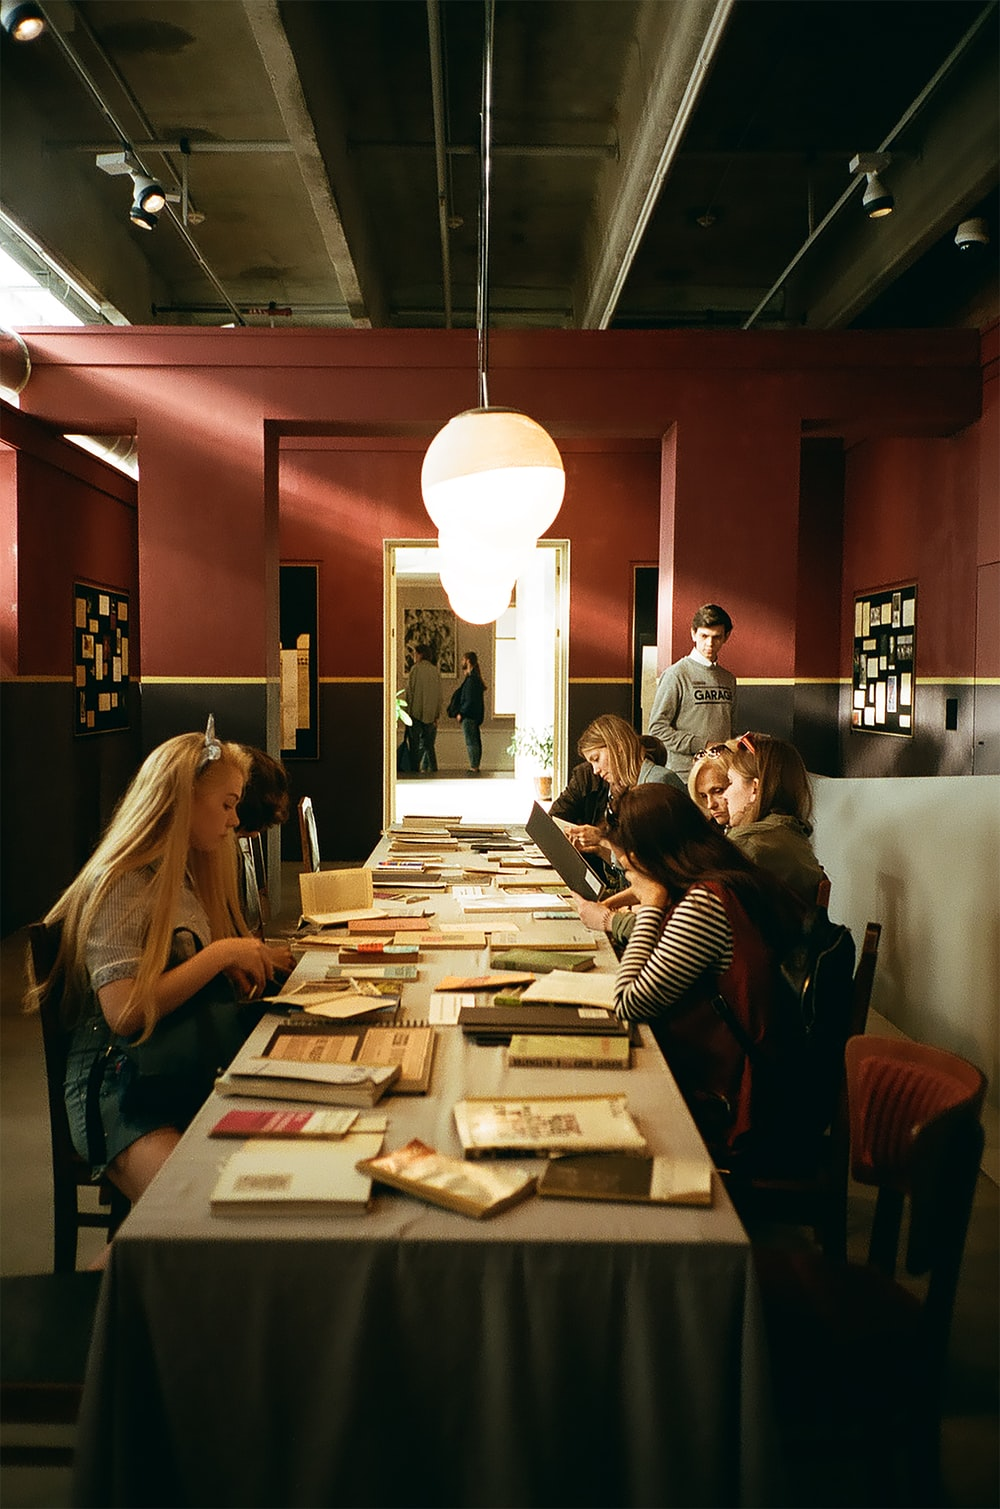 women sitting at table reading books